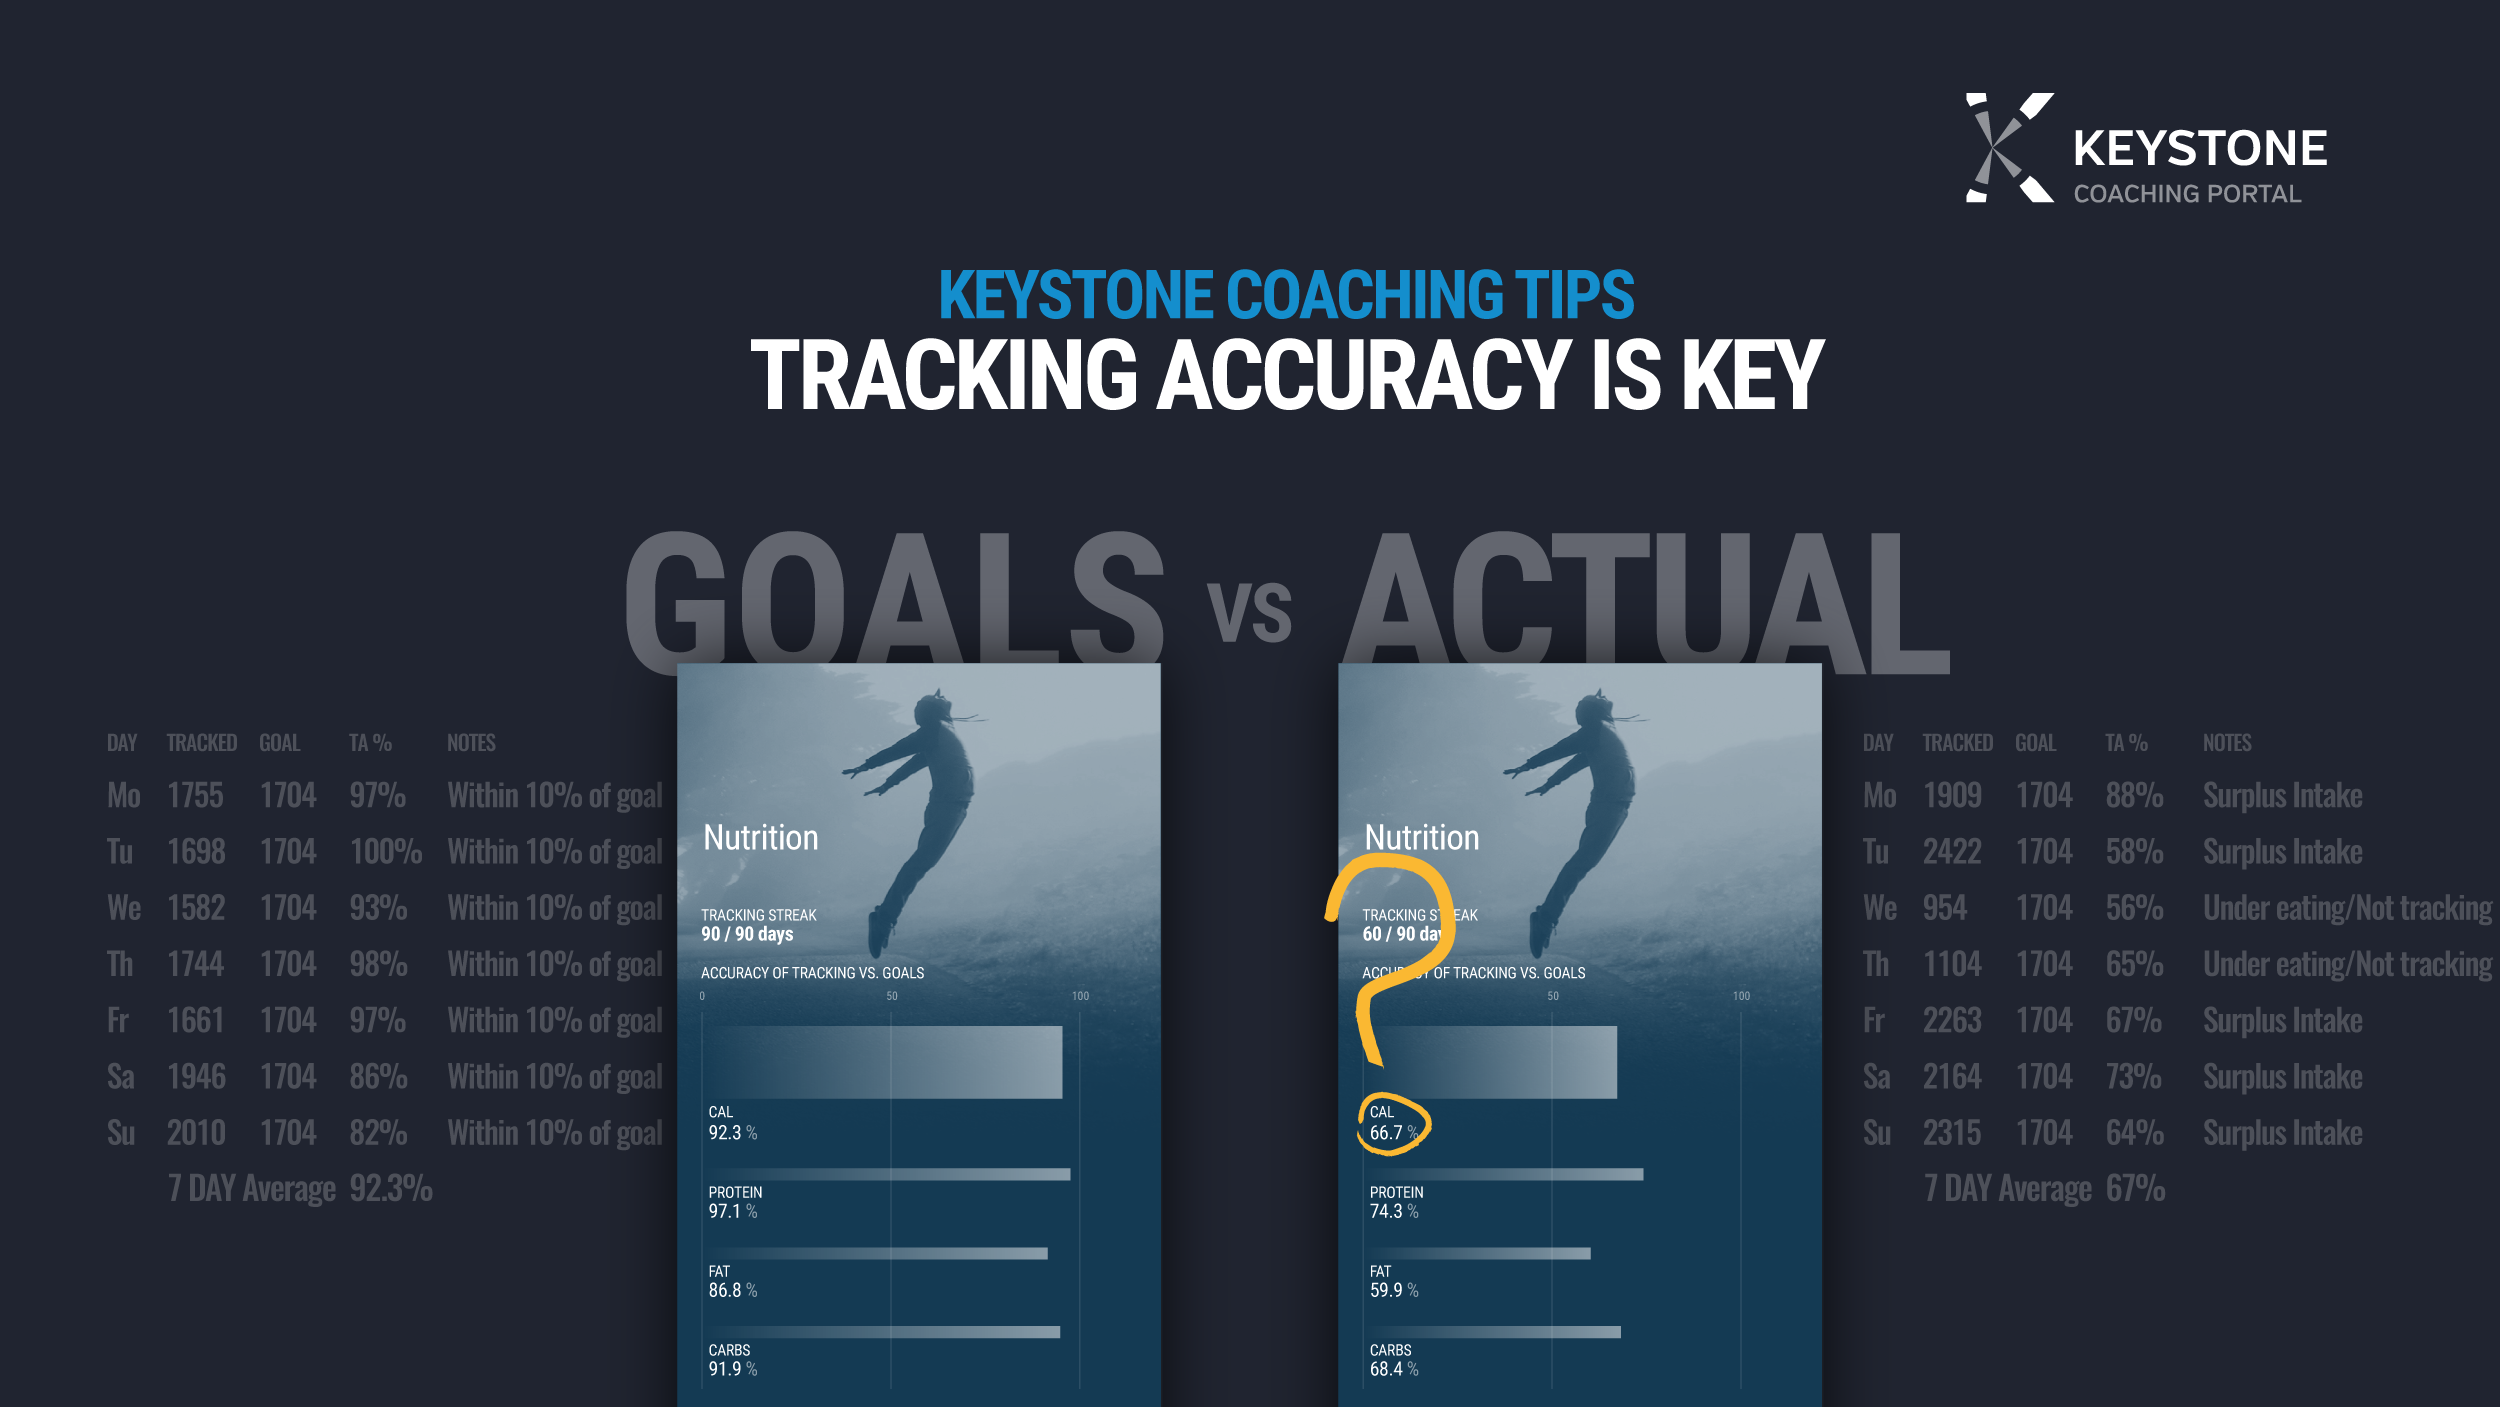 k_Post-Accuracy-vs-Goals_L_1.png